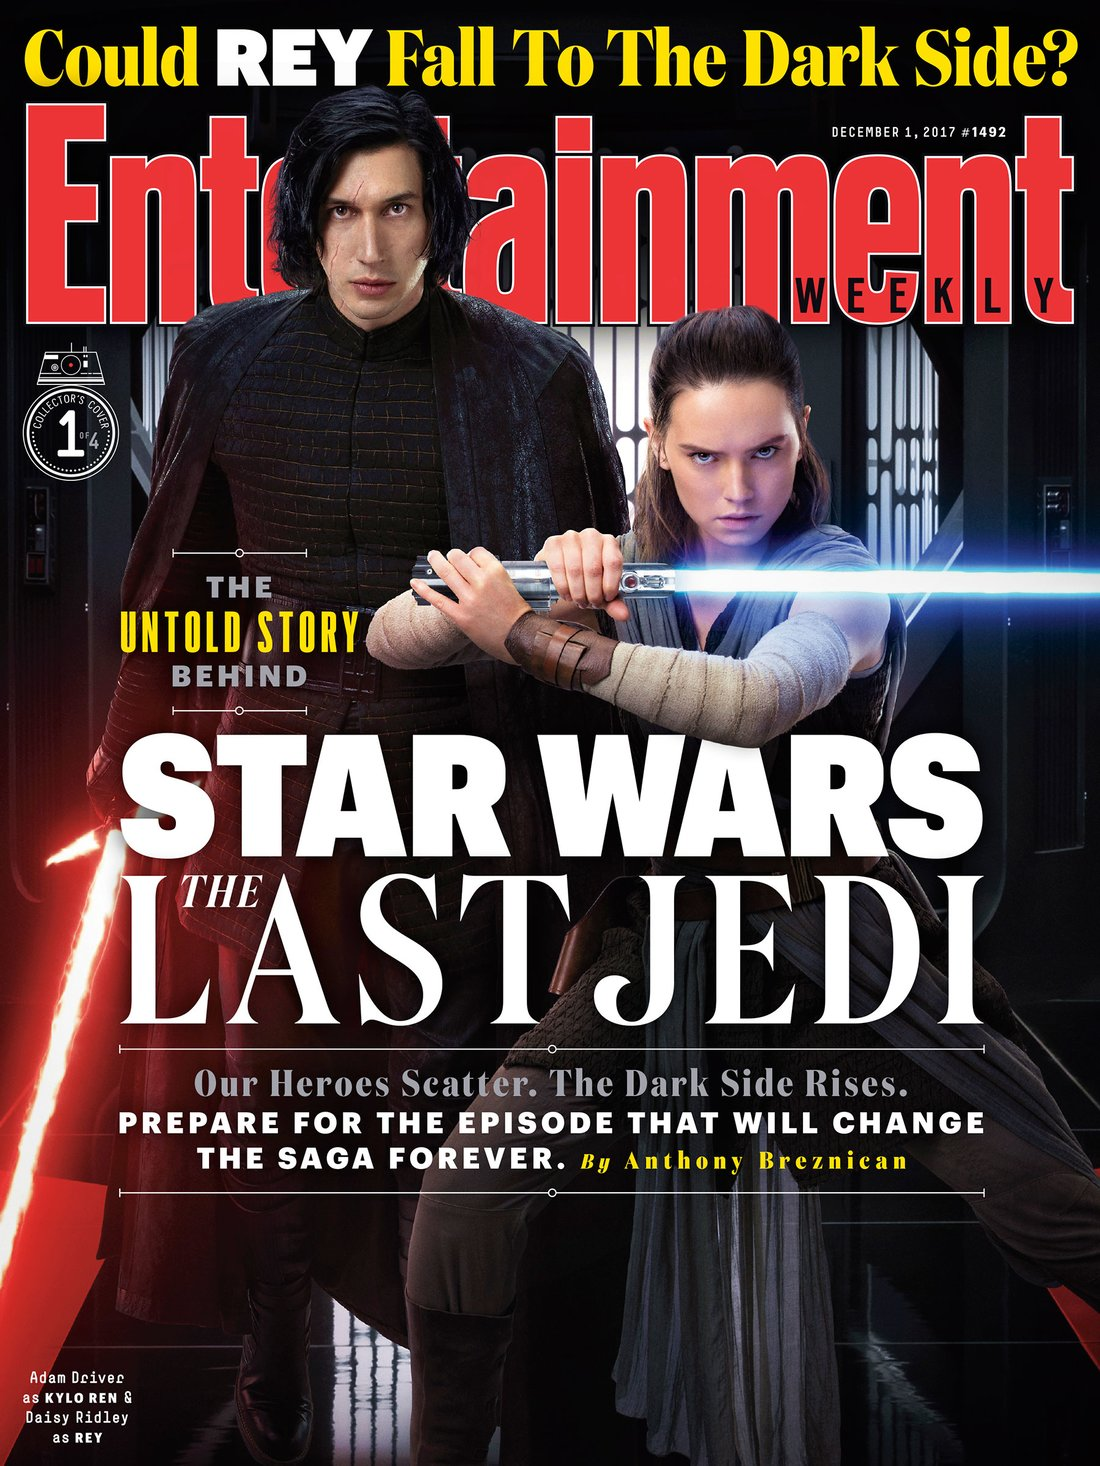 stella, star Wars The Last Jedi - Kylo Ren and Rey Entertainment Weekly Cover